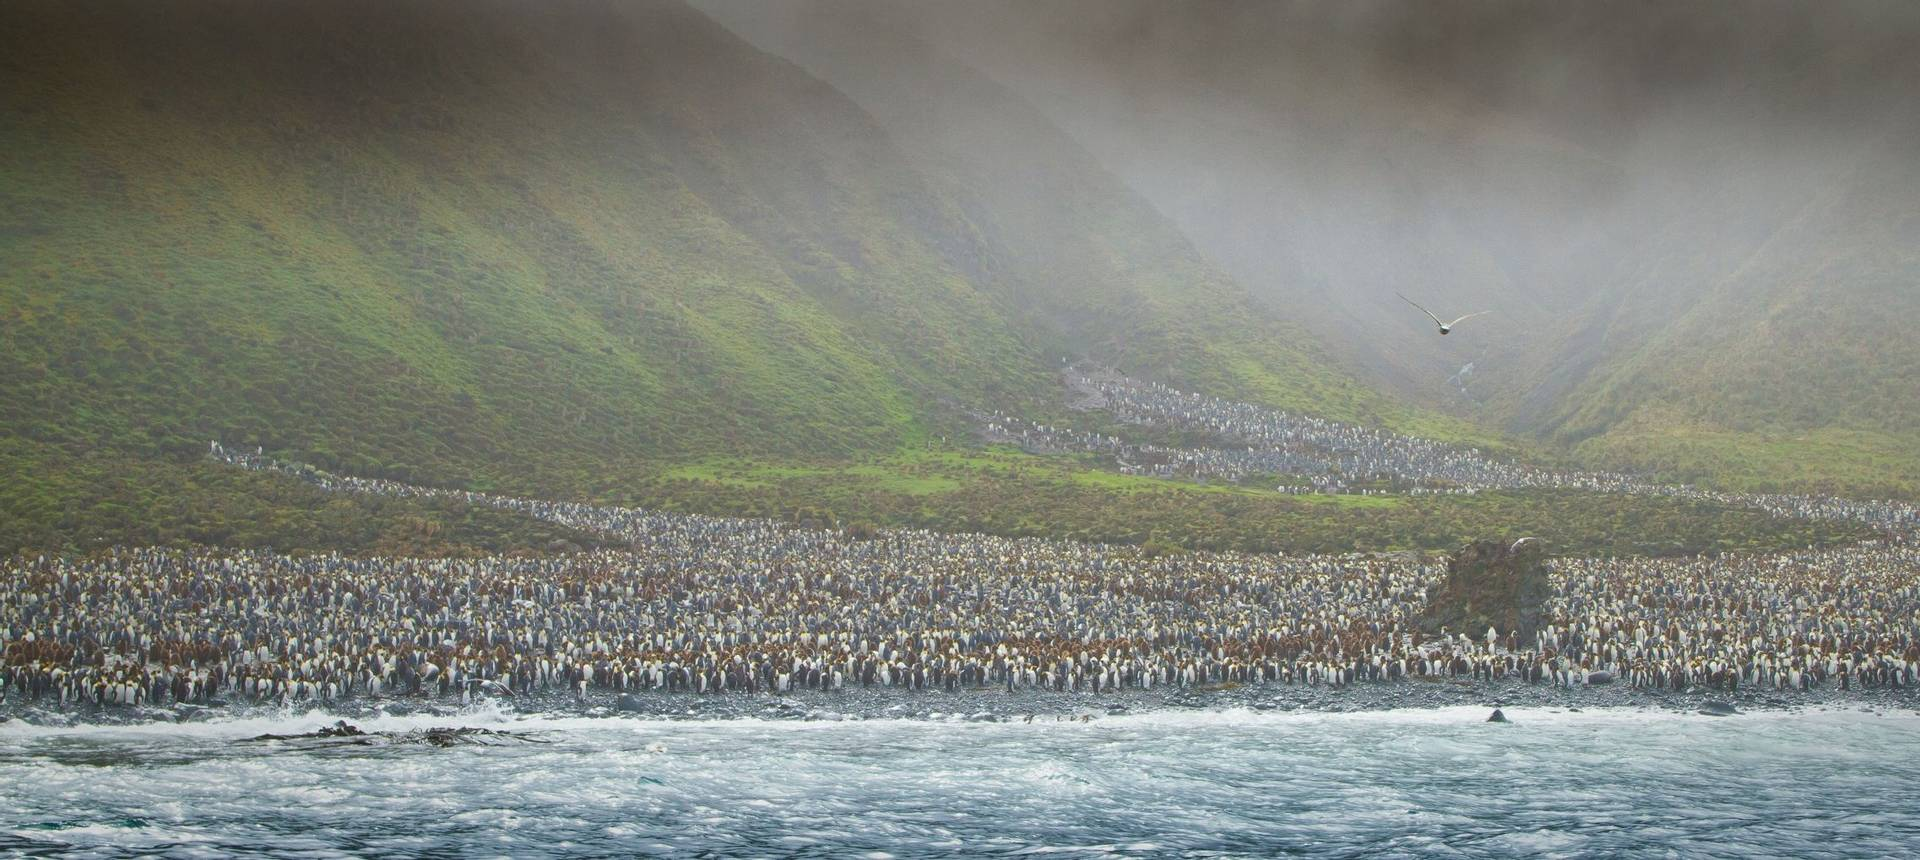 Penguin Colony, Macquarie Island Shutterstock 58273162